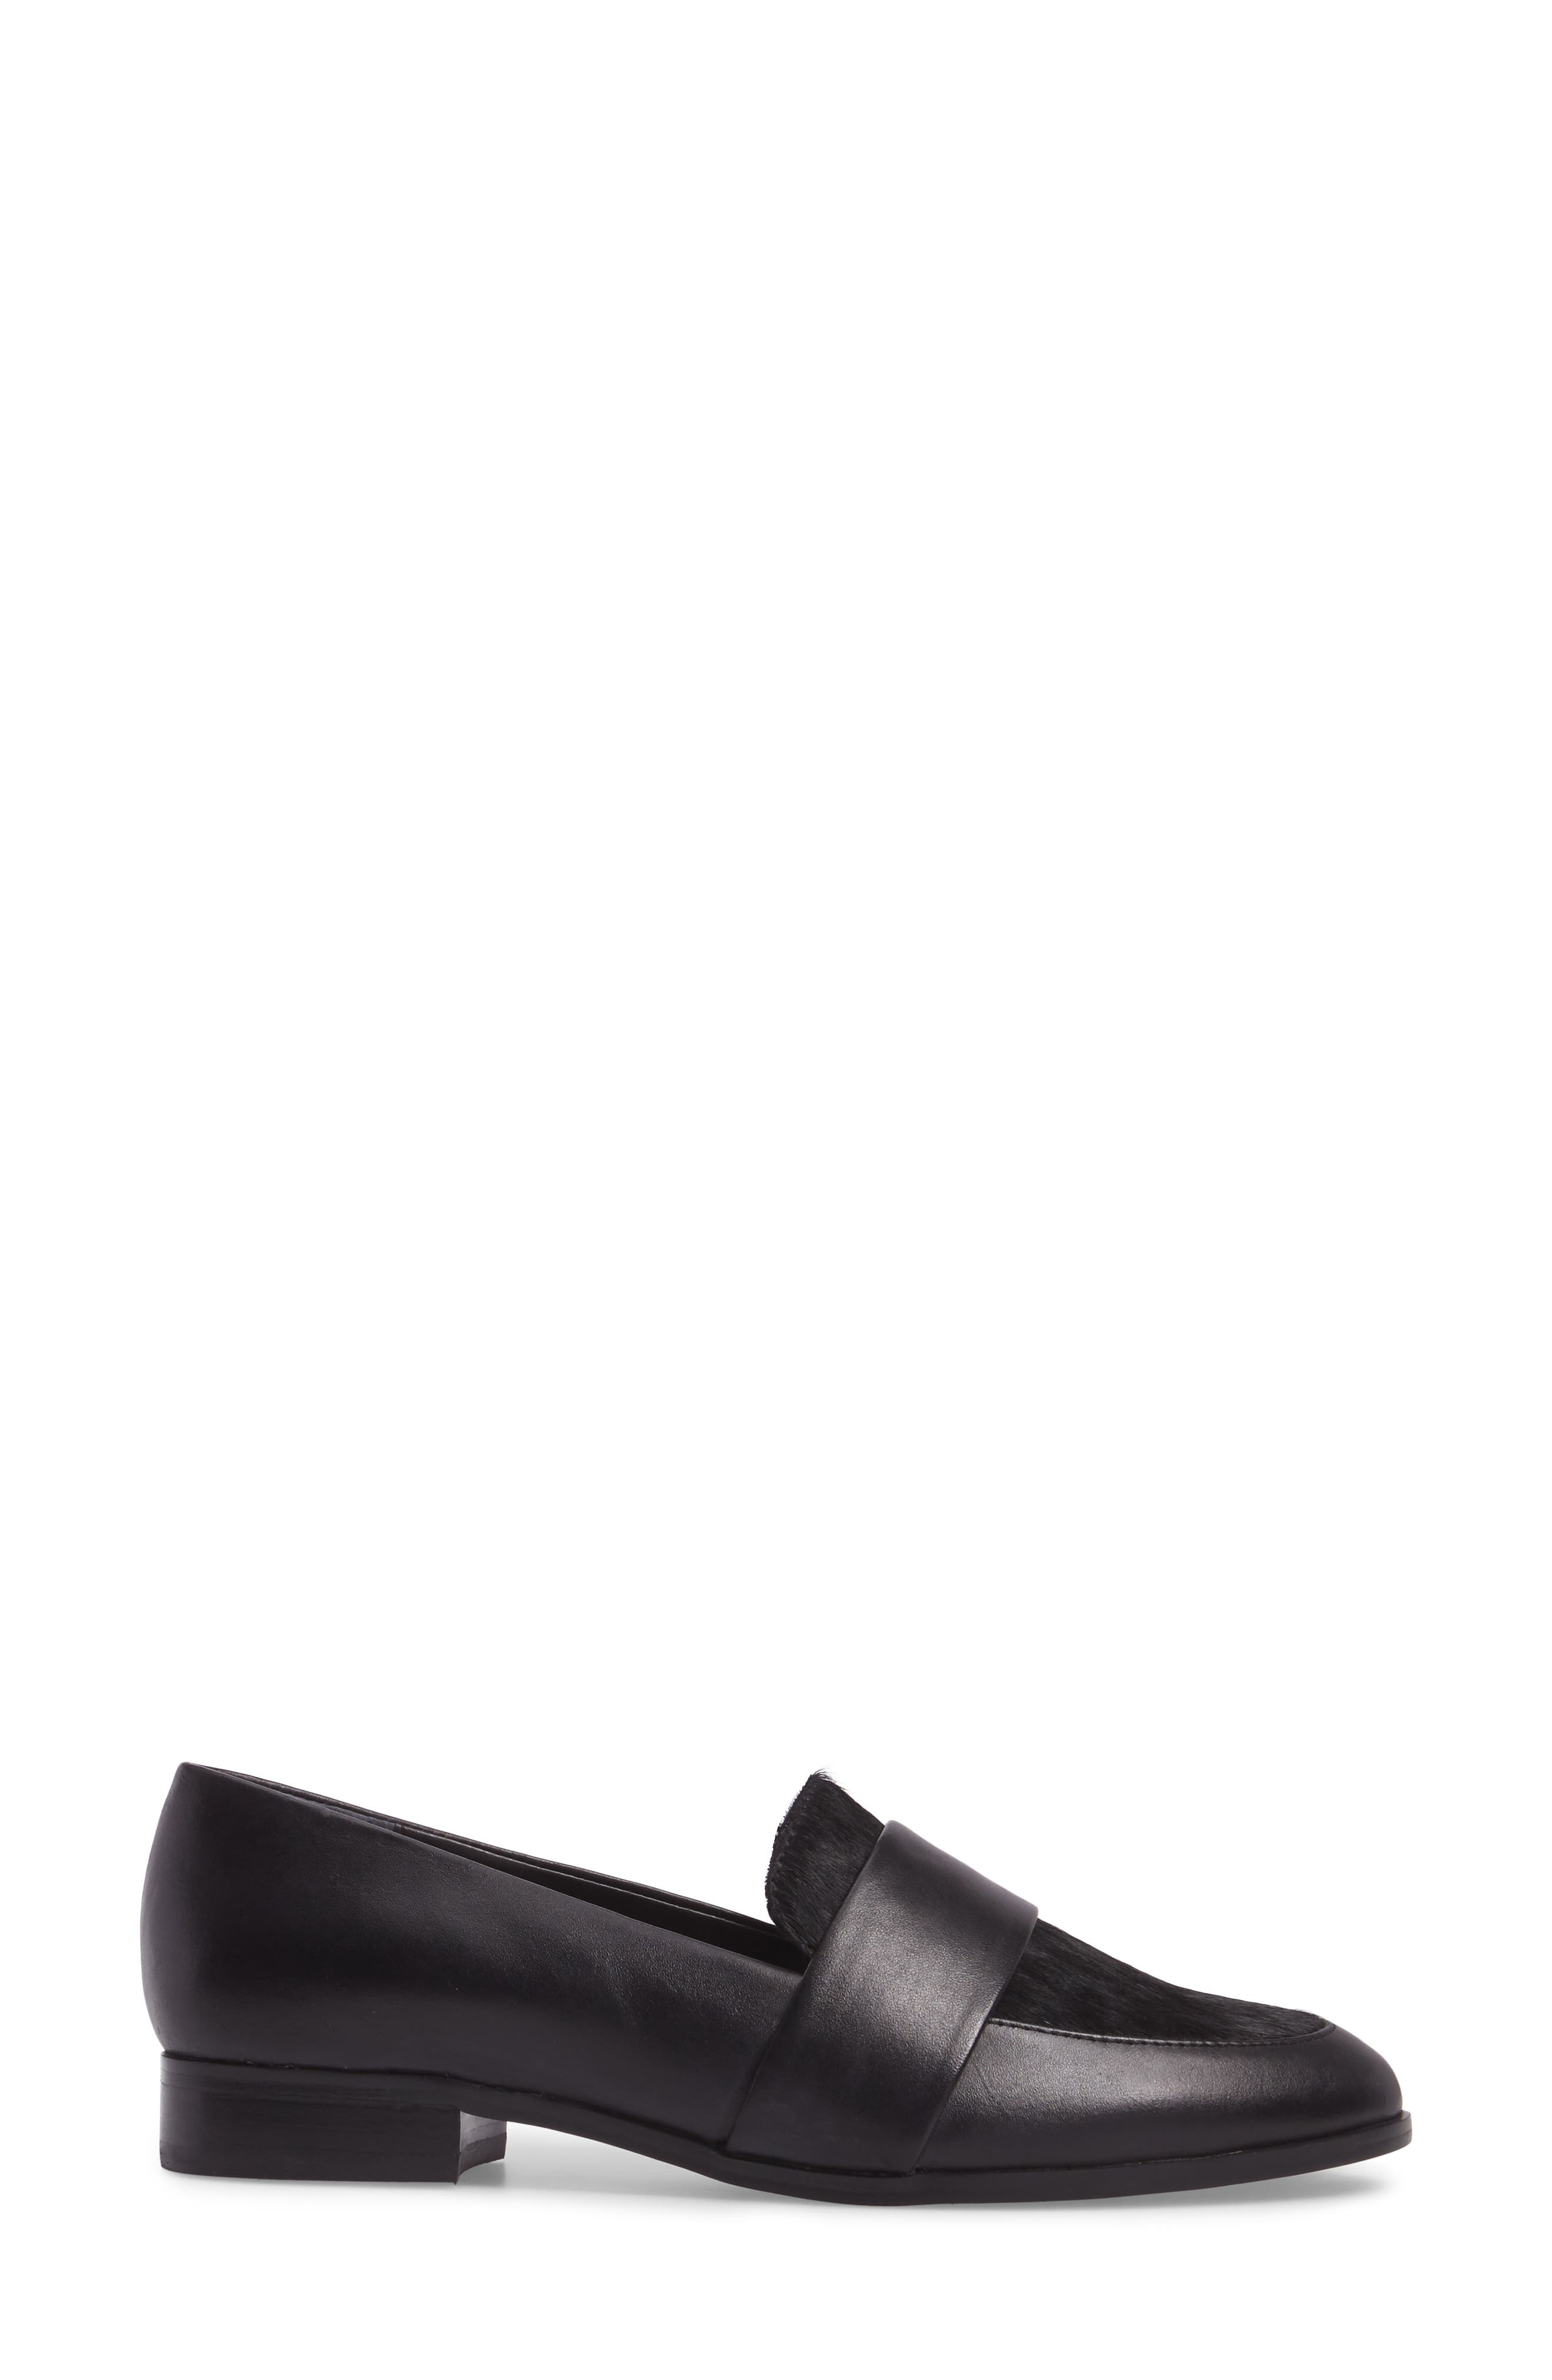 Goldie Loafer,                             Alternate thumbnail 3, color,                             Black Leather/ Calf Hair